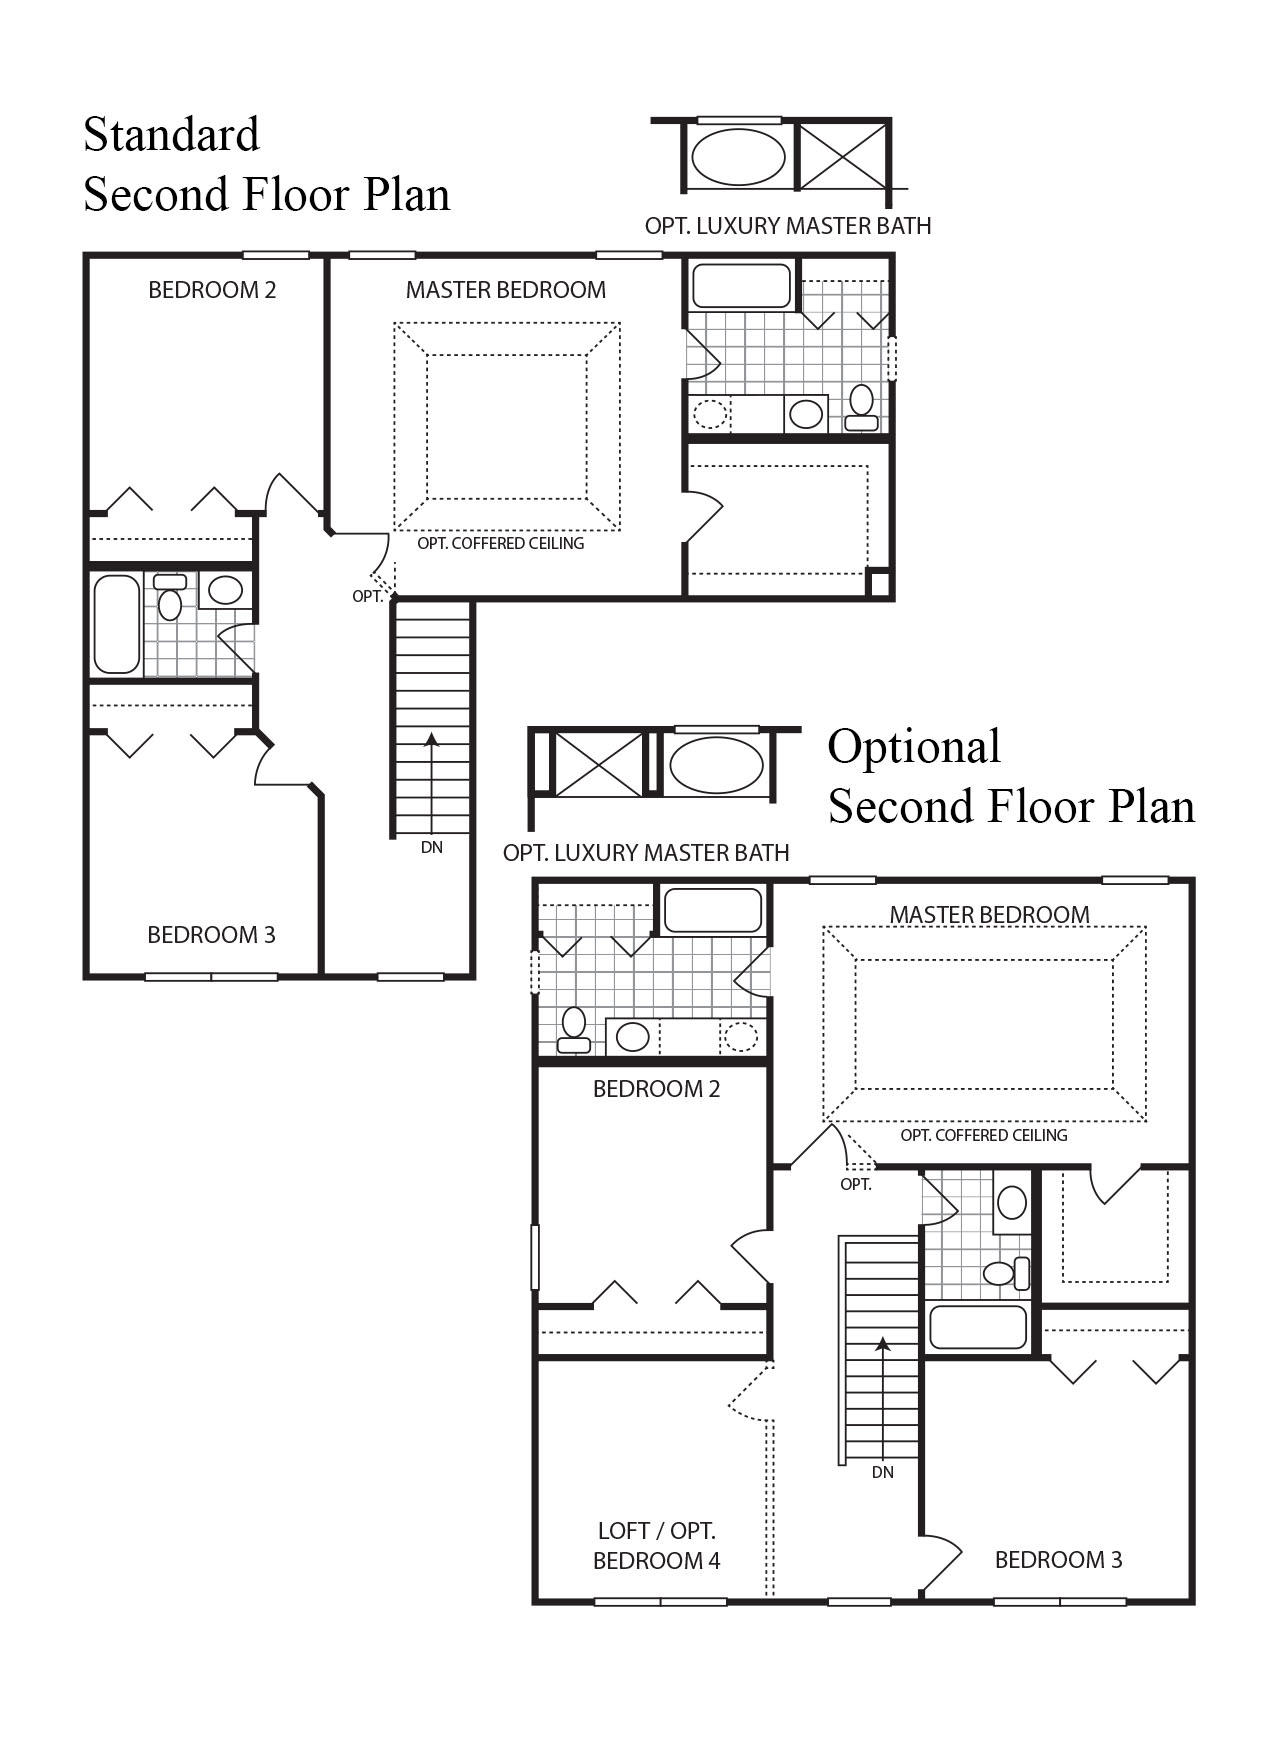 100 Cul De Sac Floor Plans Home Builders St Louis: place builders floor plans